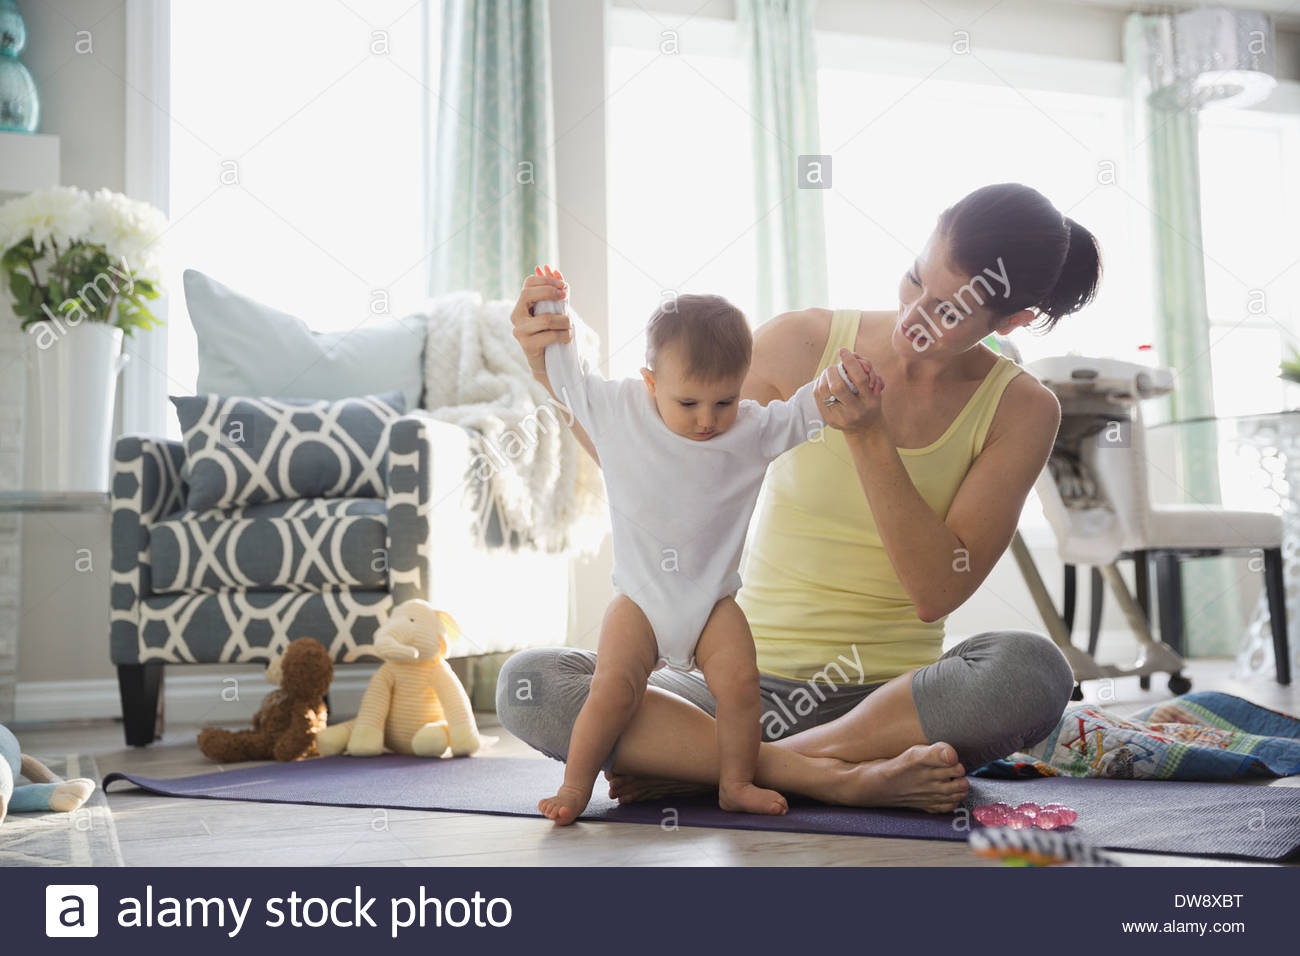 Mother playing with baby girl on exercise mat at home - Stock Image